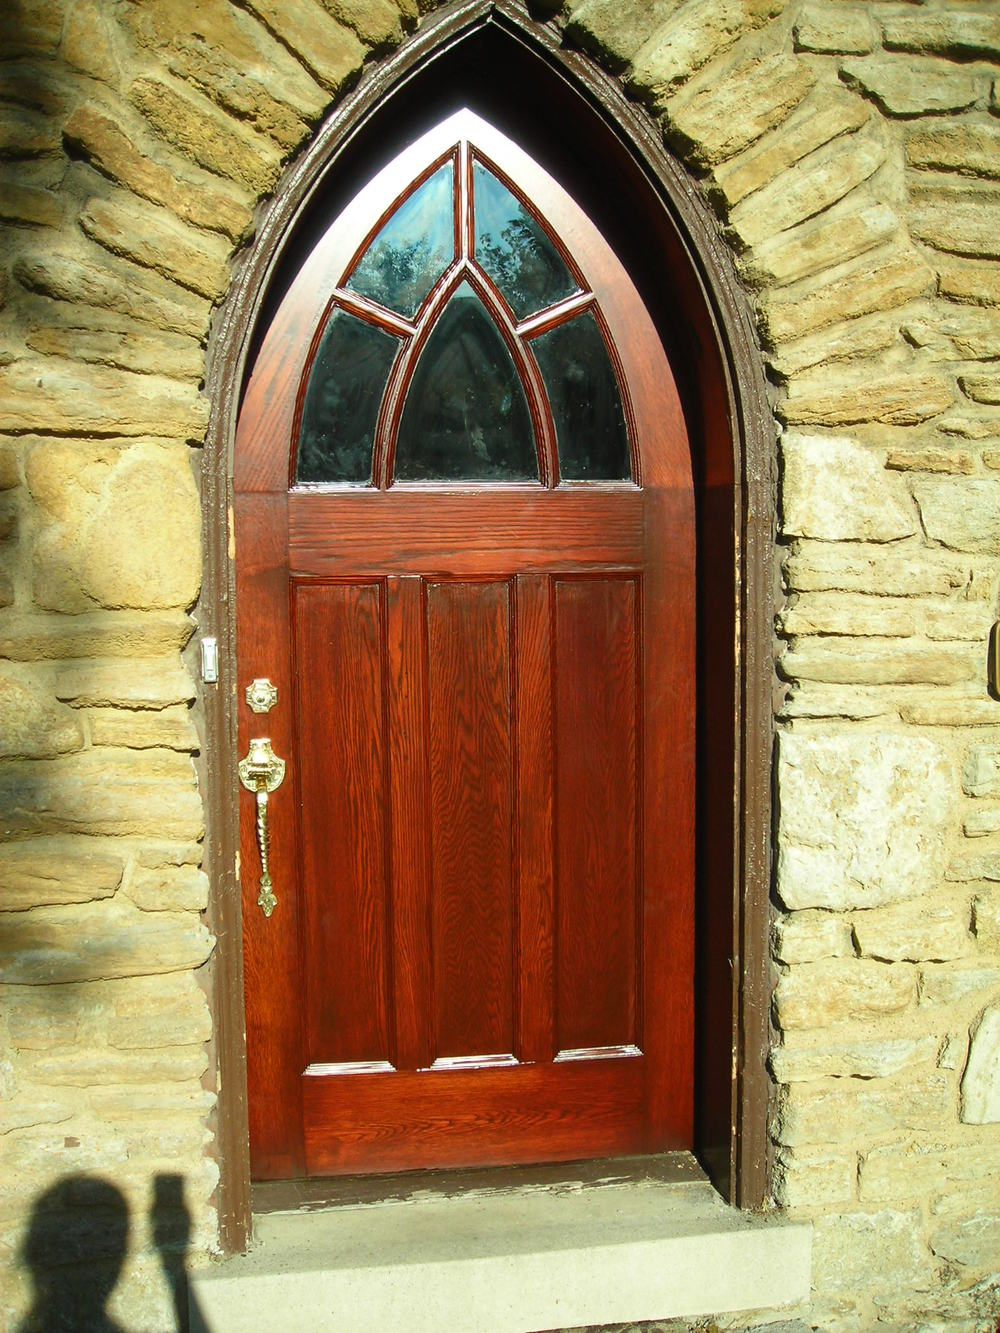 exterior-door-wood-wooden-refinish-refinishing-weathered